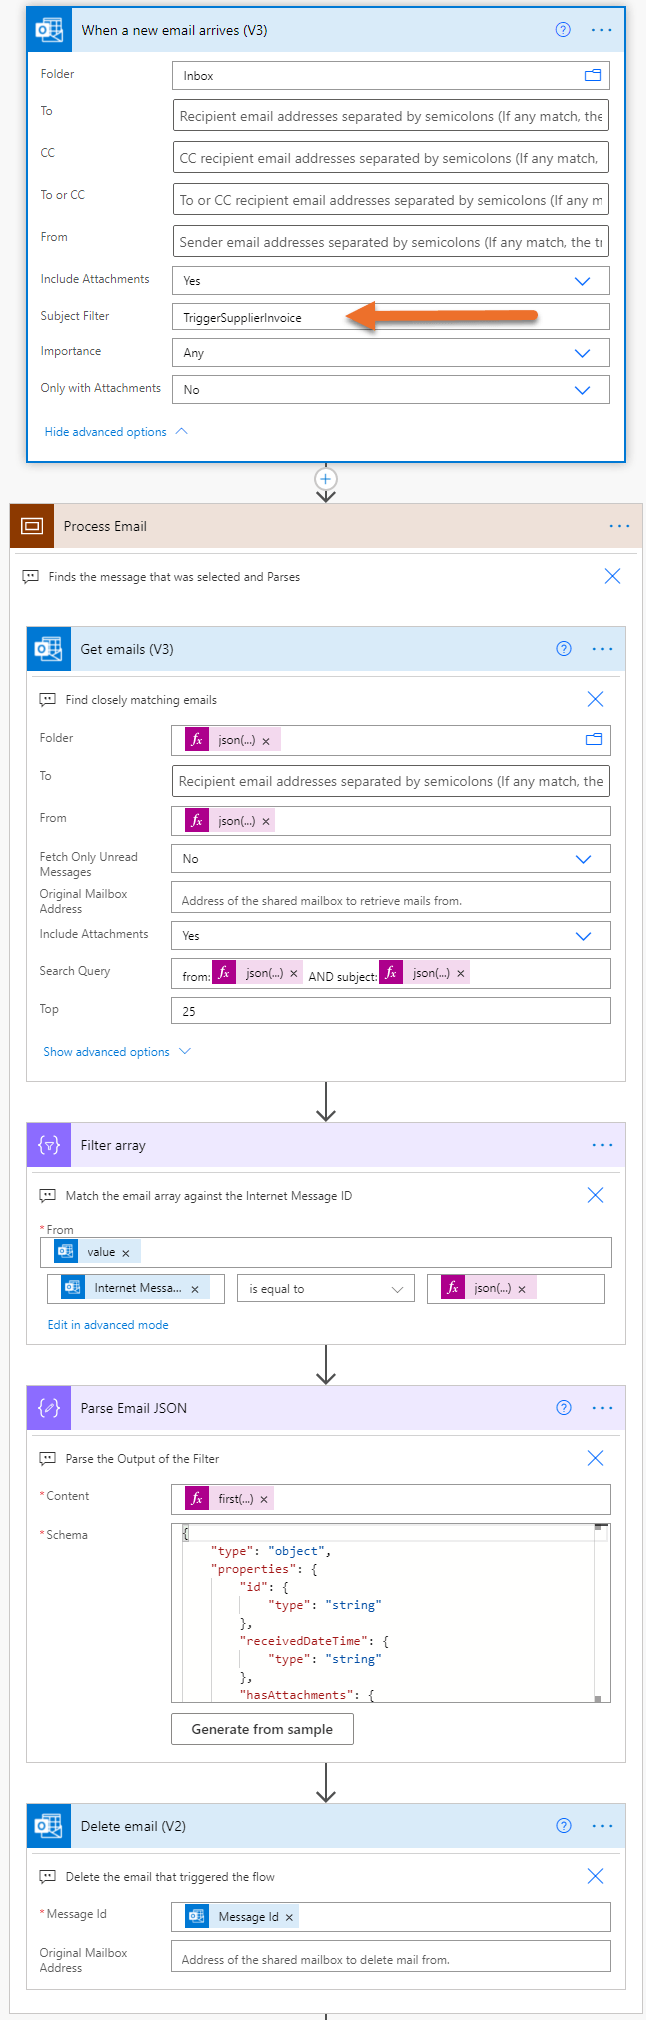 Image of a Power Automate flow that is triggered for a selected email in Outlook